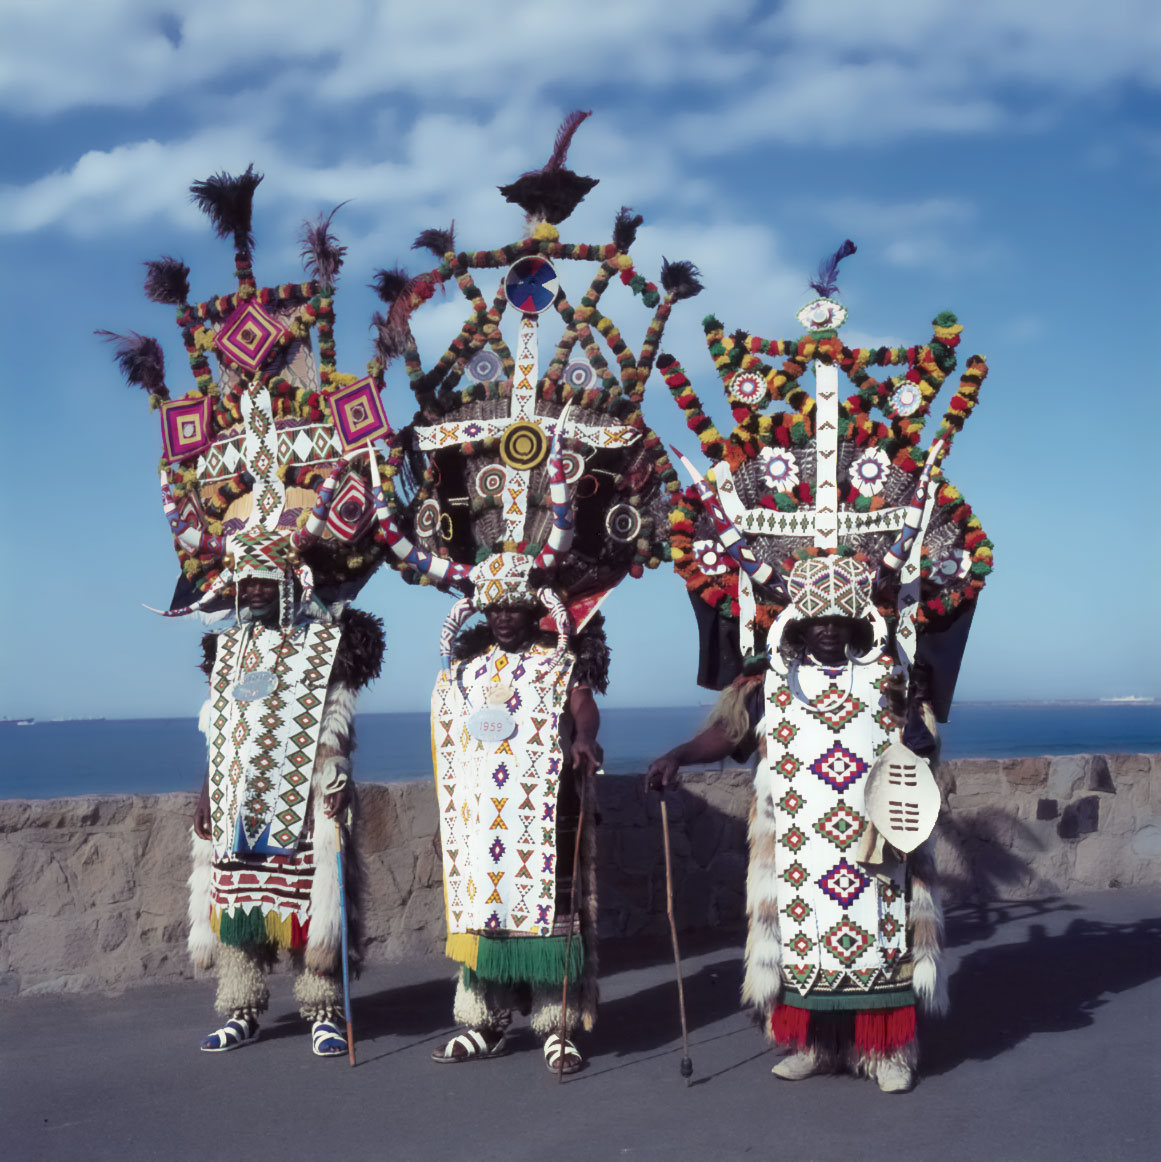 ZULU RICKSHAW PULLERS ON THE BEACHFRONT, Durban, South Africa, early 1980s.  Photograph by Jean Morris.